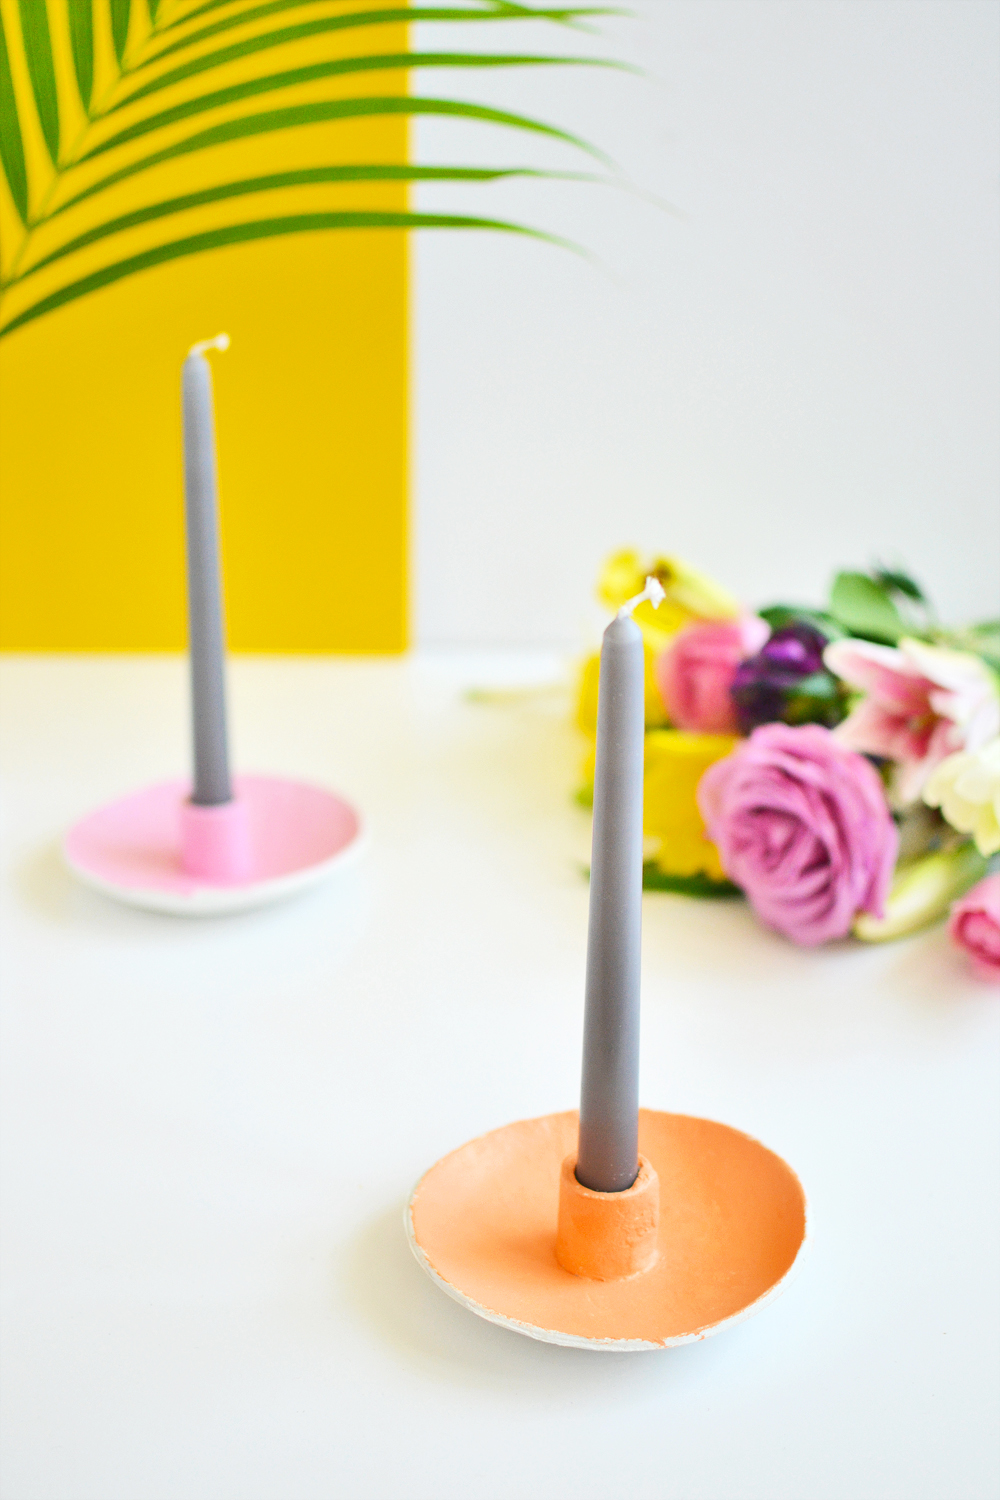 diy candle holder 1 - Diy Candle Holders